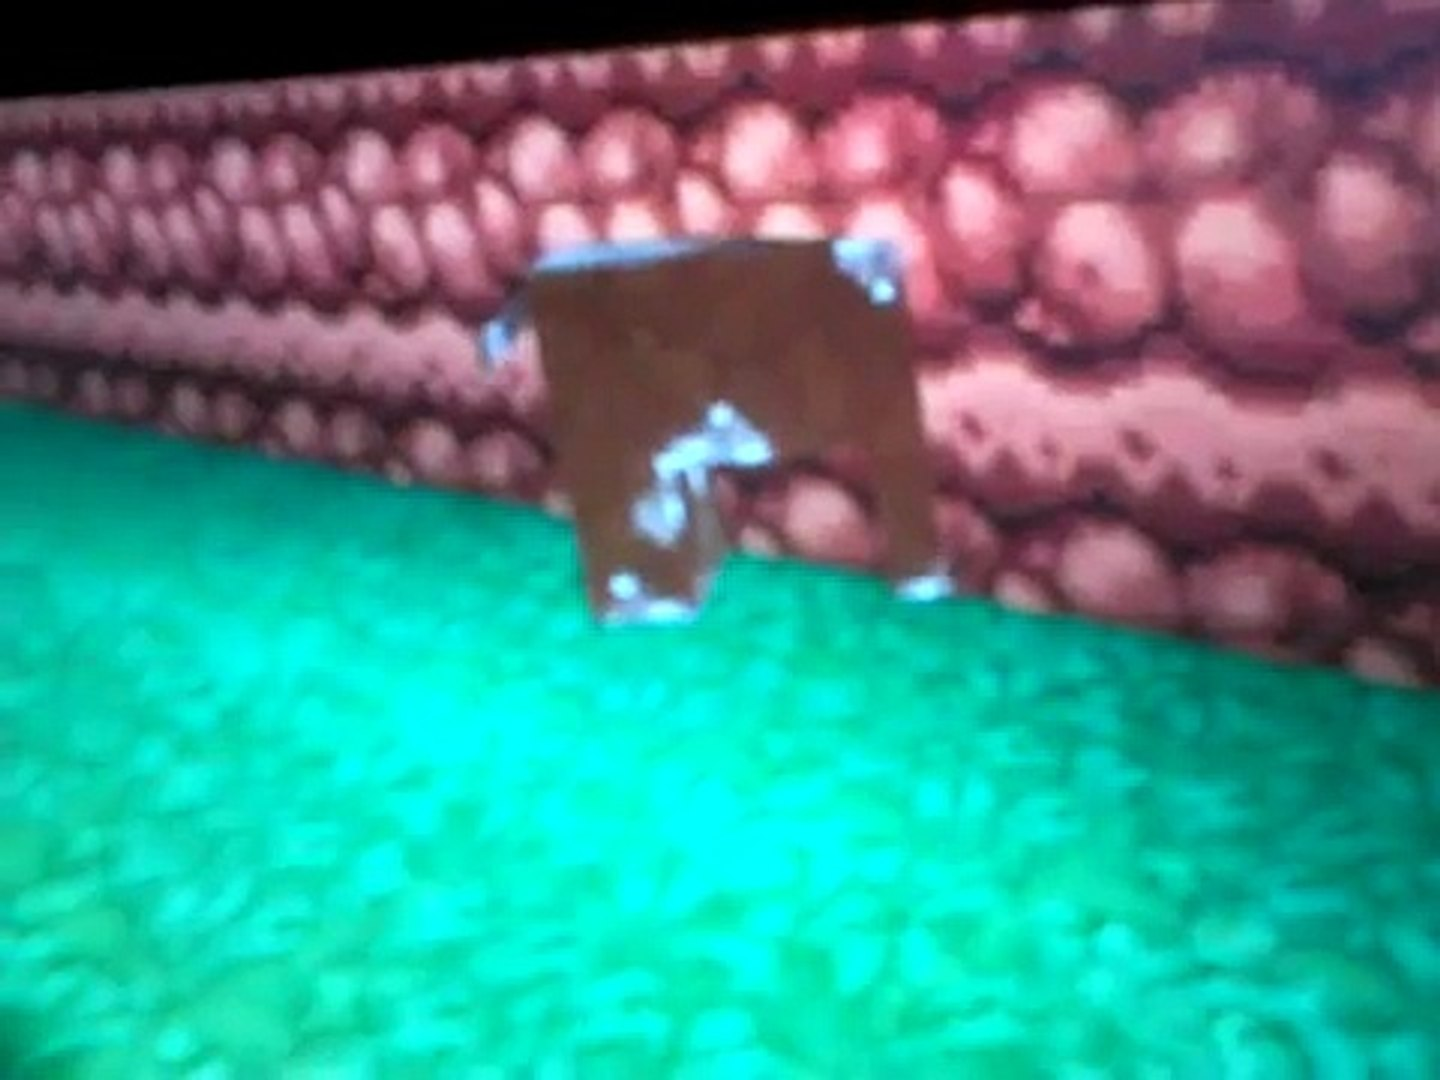 Cow stuck in a wall glitches!